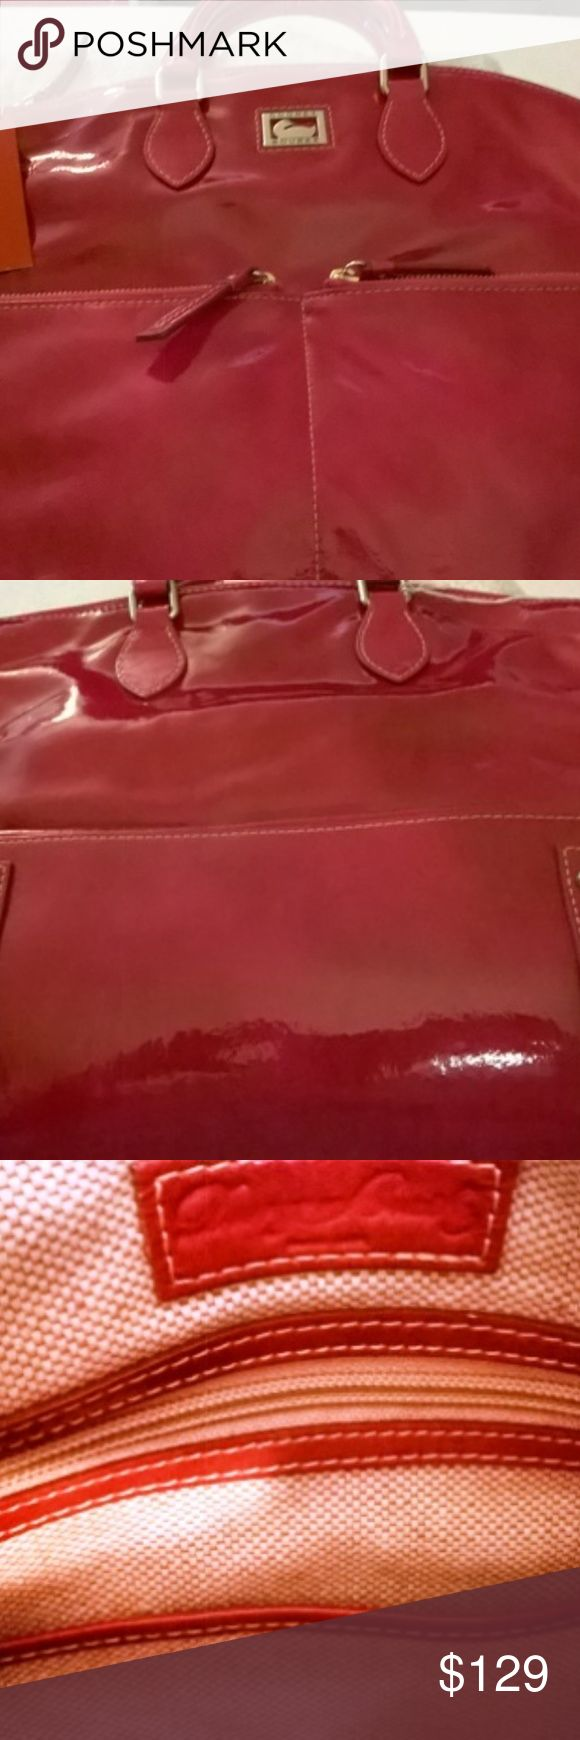 Dillen Patent Leather Large Pocket Satchel-Fuschia This Coach Vintage Patent Leather bag is made from, of course, leather. it is then processed to a high glossy shine. It is NEW and has the registration card, tags, sticker attached in inner pocket and dust bag. This bag doesn't have any cracks in the leather because it has never been used and has been stored in its dust cover bag in a bin at even temperatures. This bag is a Fuchsia color. It has a zippered top closure and two front zippered…